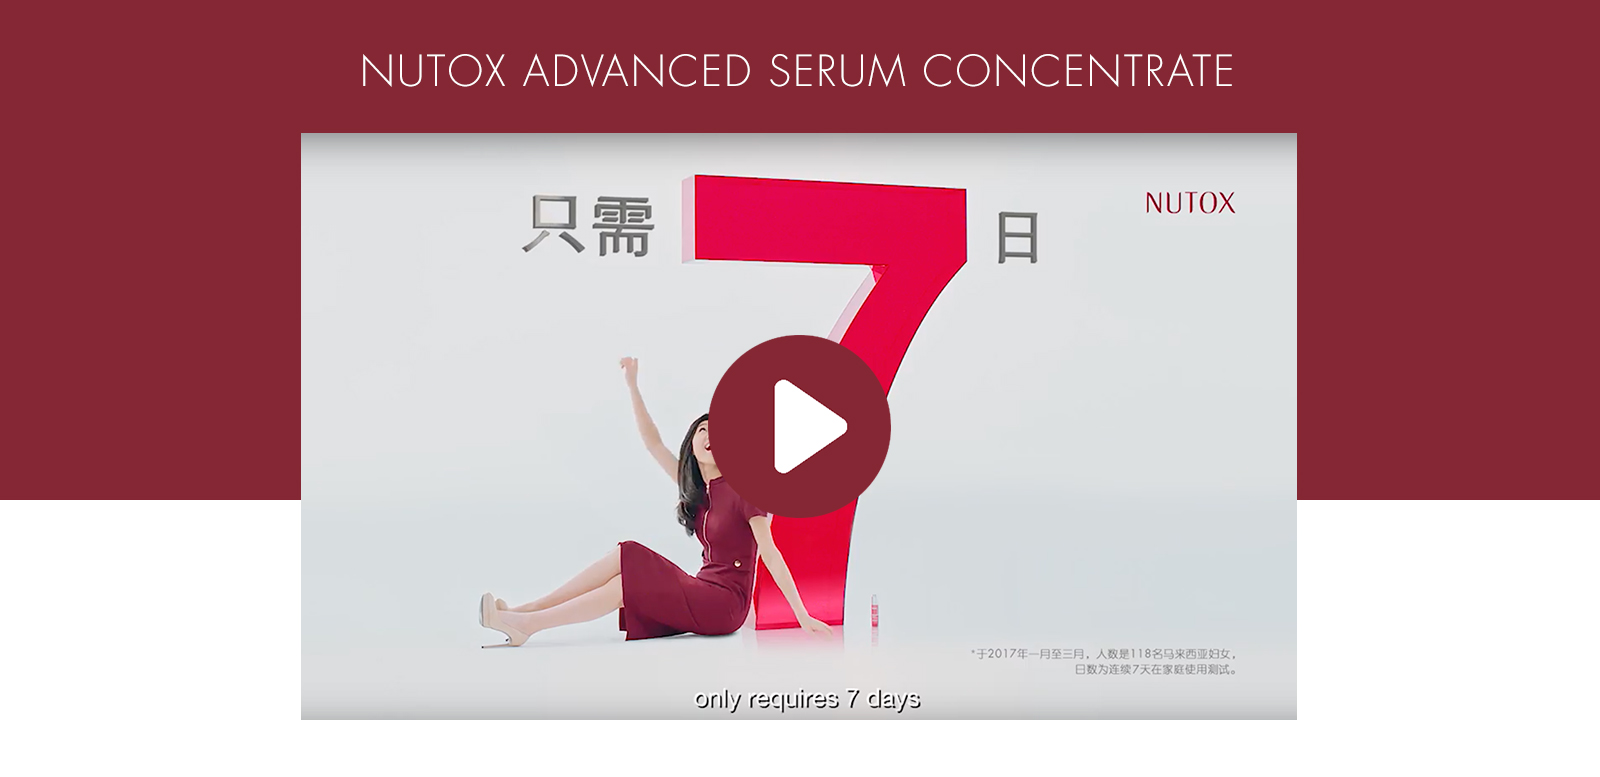 Nutox Advanced Serum Concentrate